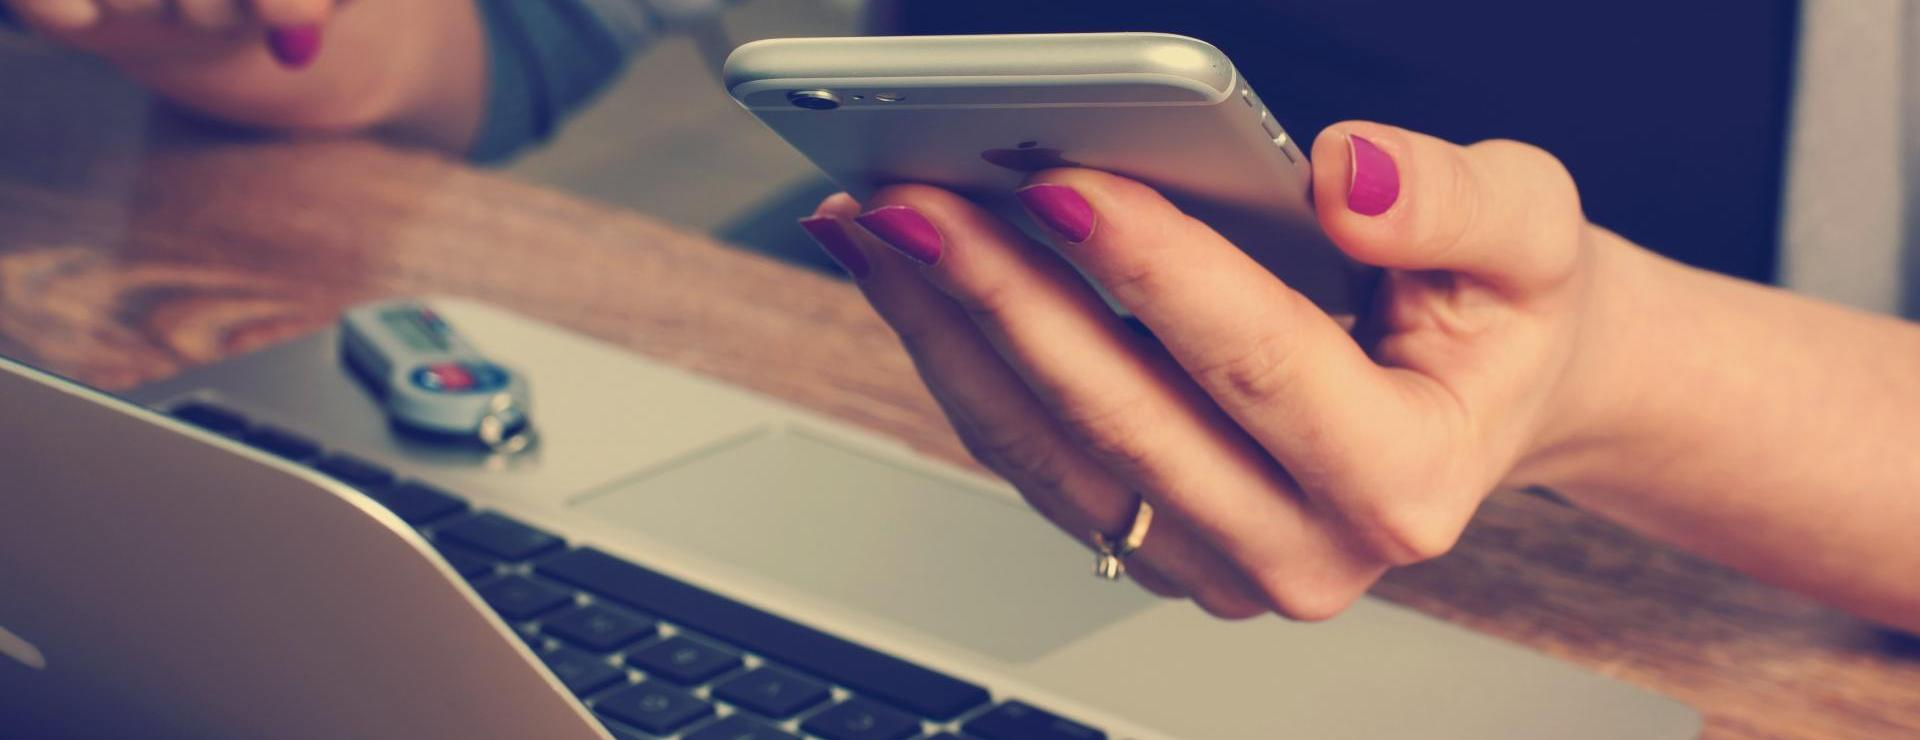 woman's hand holding phone in front of laptop